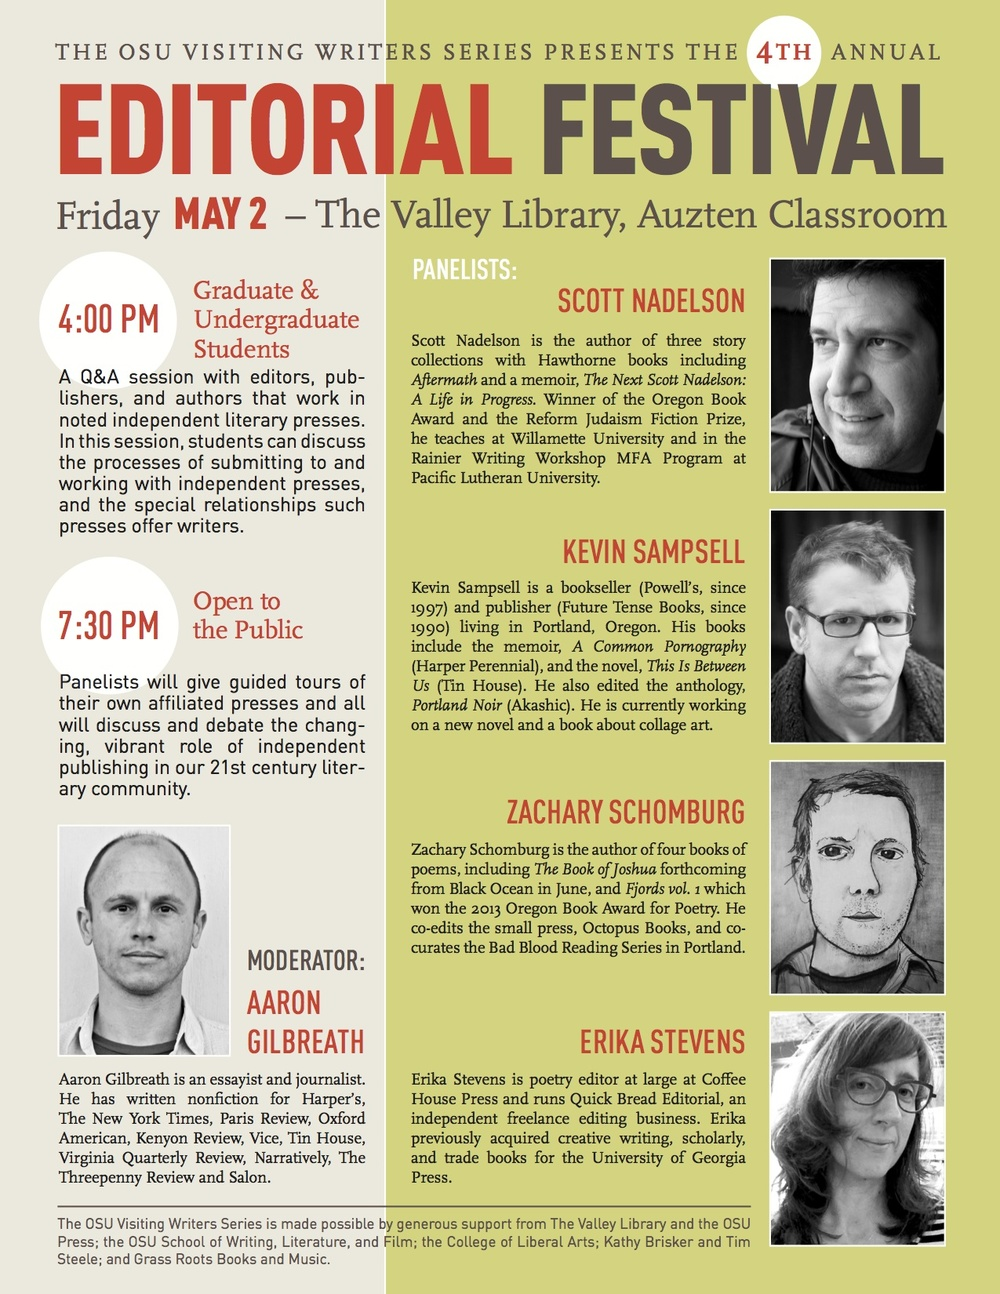 I'll be at Oregon State University in Corvalis, OR, this Friday for the 4th Annual Editorial Festival. If you have a question, you should bring your question to Corvalis.